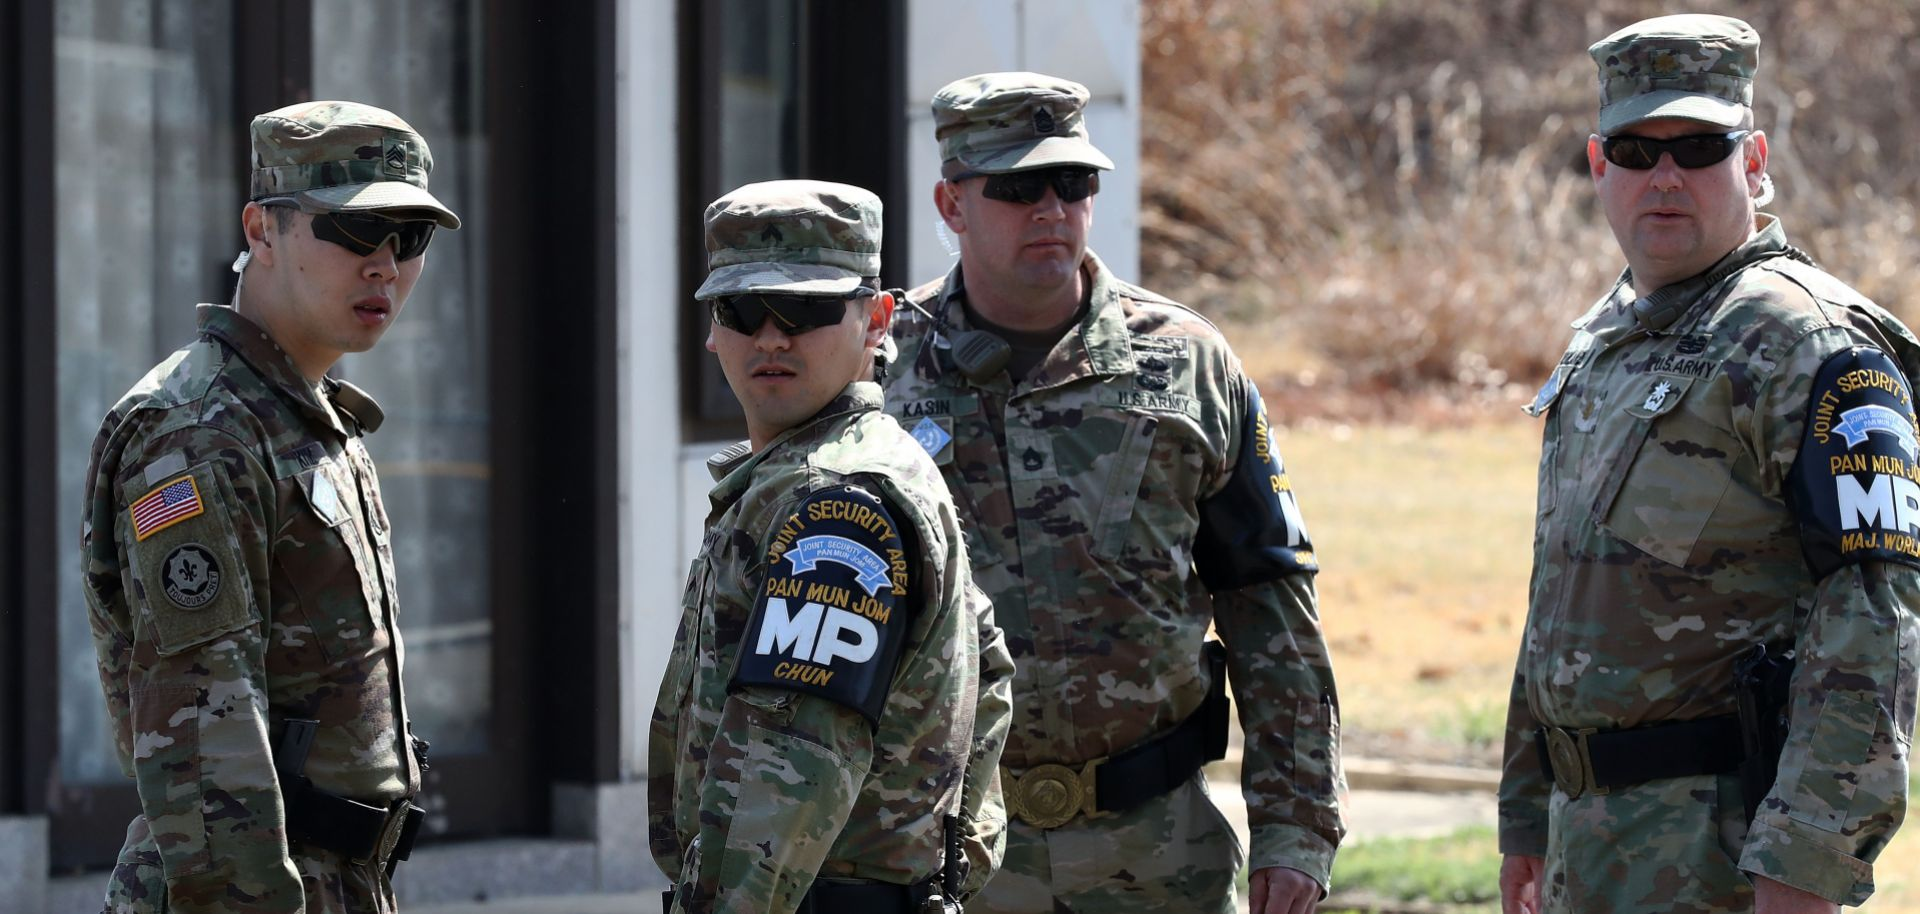 This photo shows U.S. soldiers standing guard in the Korean border village of Panmunjom, located inside the Demilitarized Zone separating South and North Korea, on April 18, 2018.